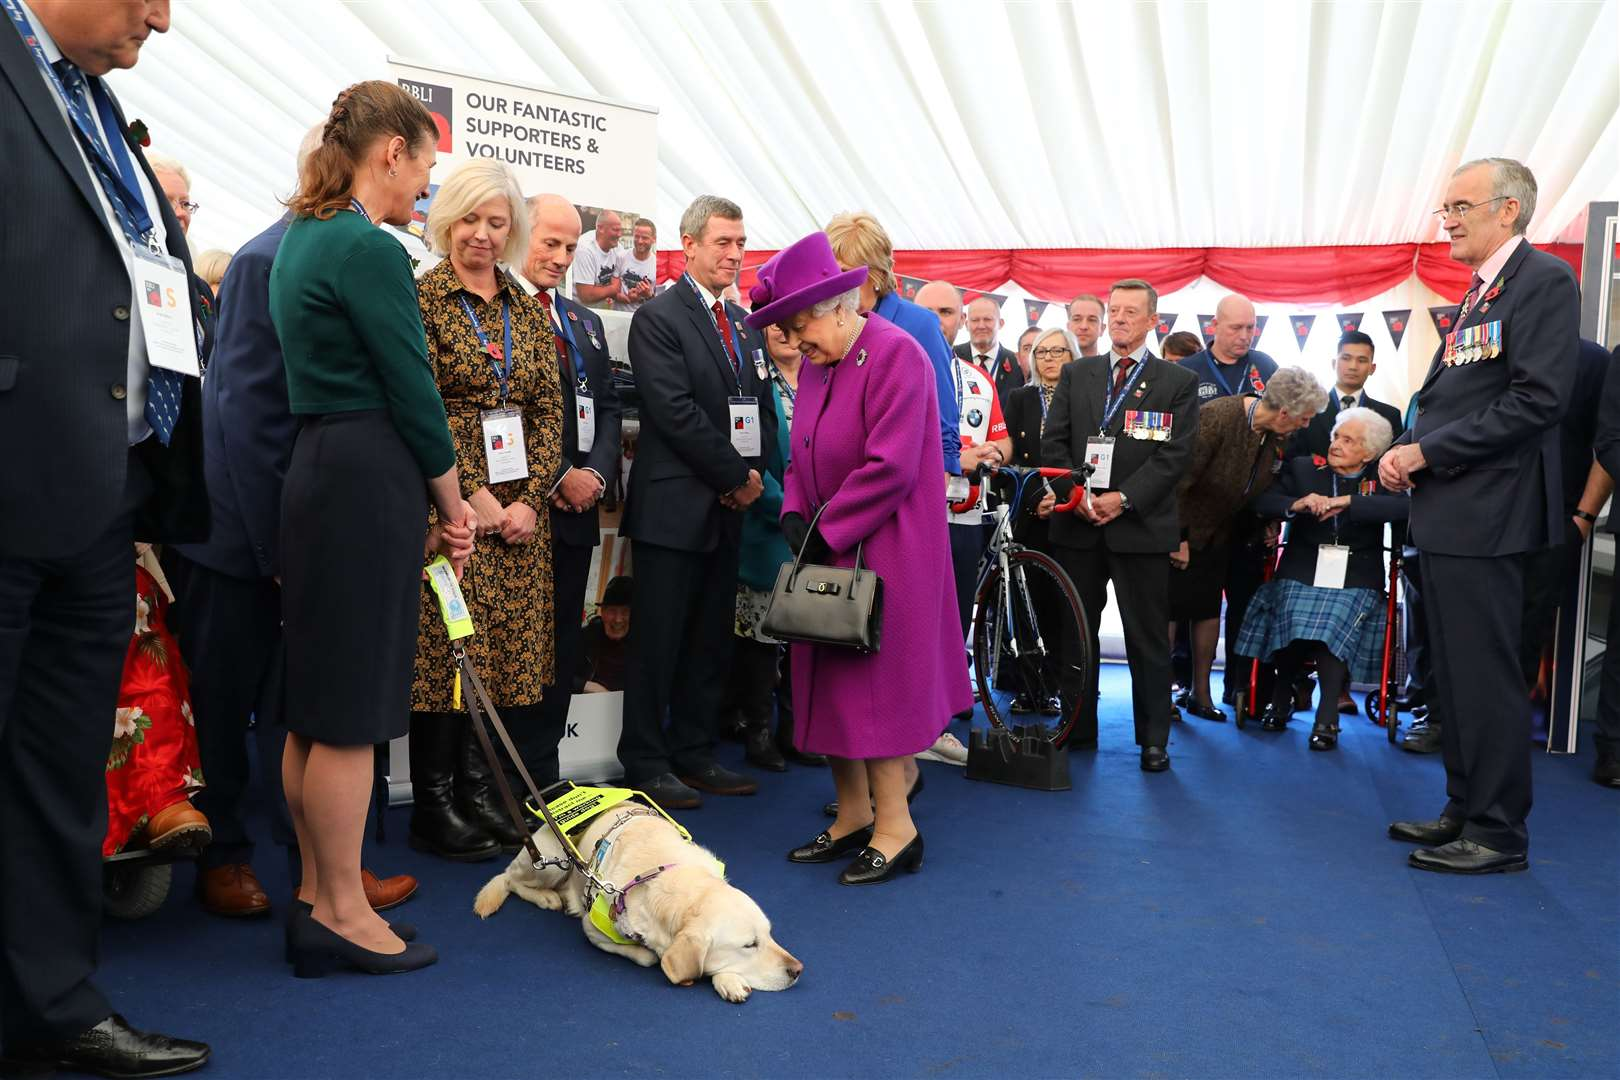 The Queen seemed very pleased to see a dog at the village